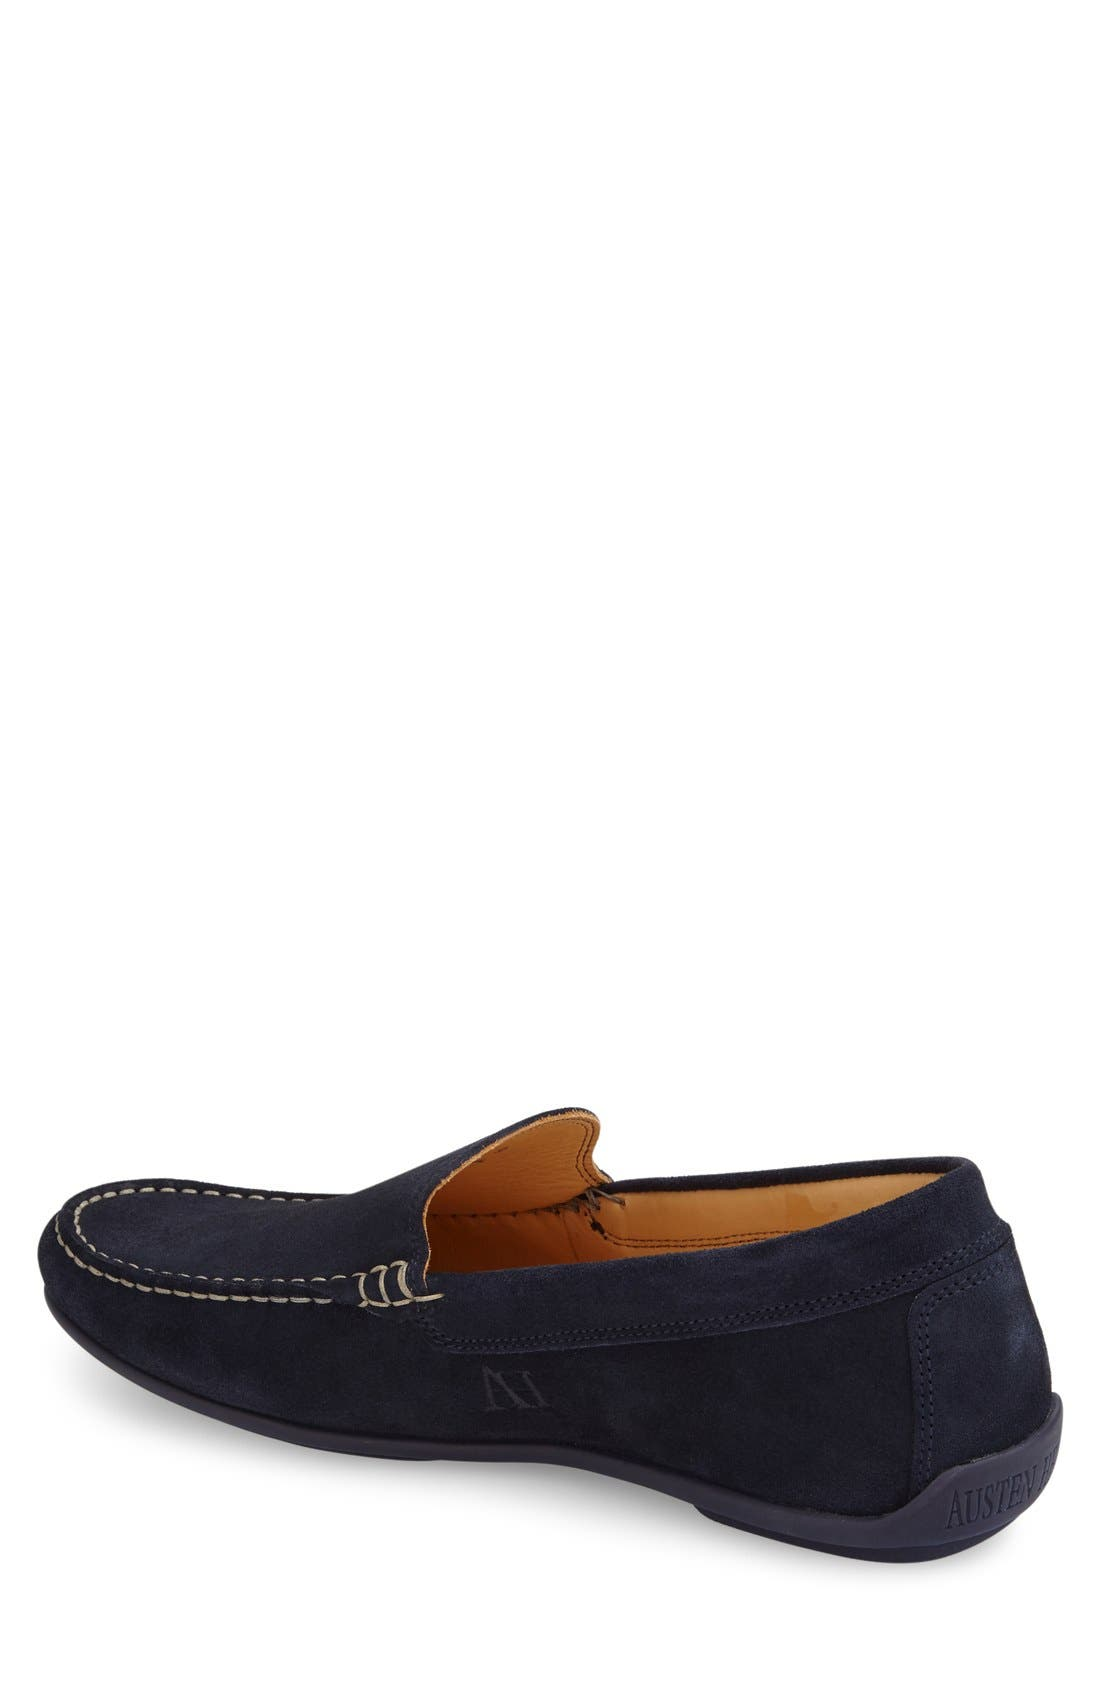 'Meridians' Loafer,                             Alternate thumbnail 9, color,                             410